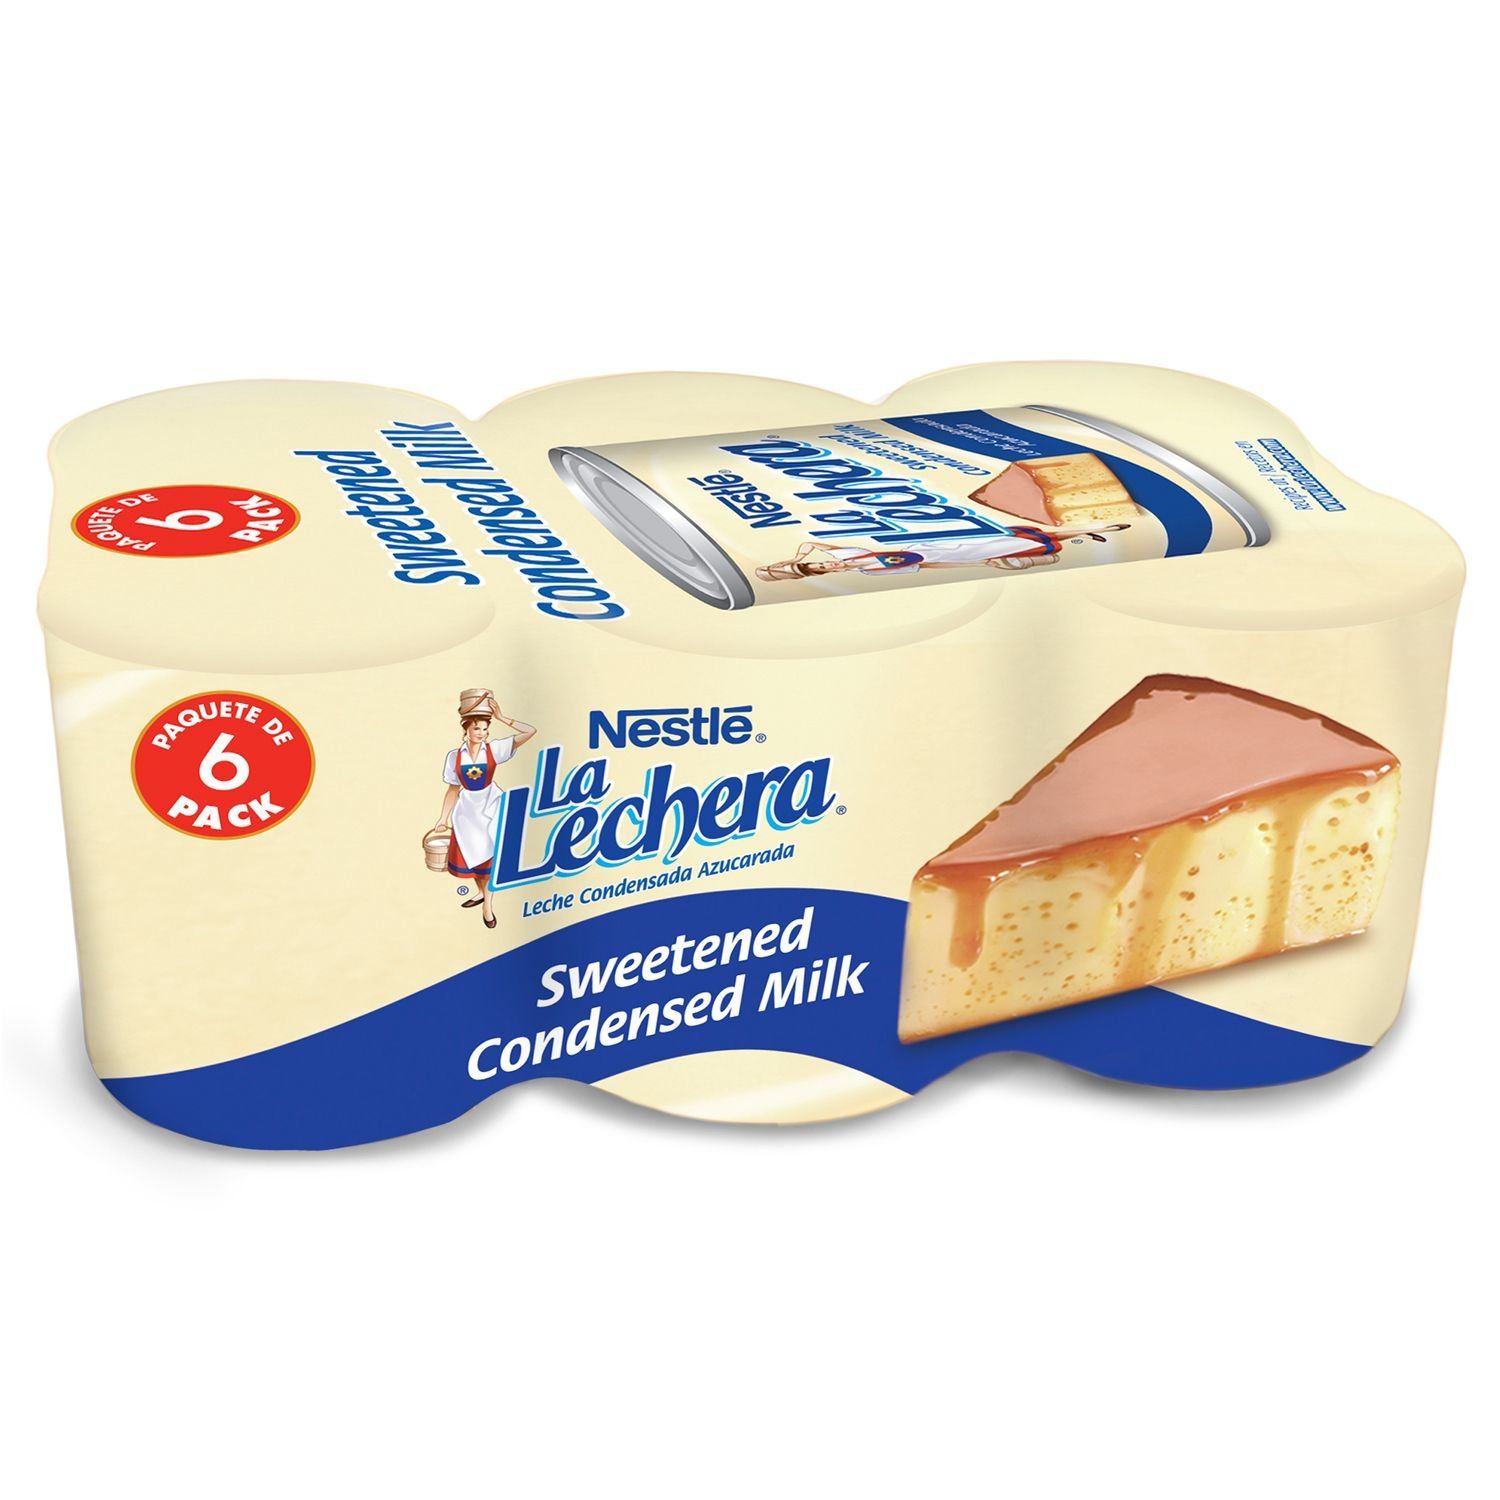 Amazon.com : Nestle La Lechera Sweetened Condensed Milk, 14-ounce Cans (Pack of 6) : Leche Condensada : Grocery & Gourmet Food